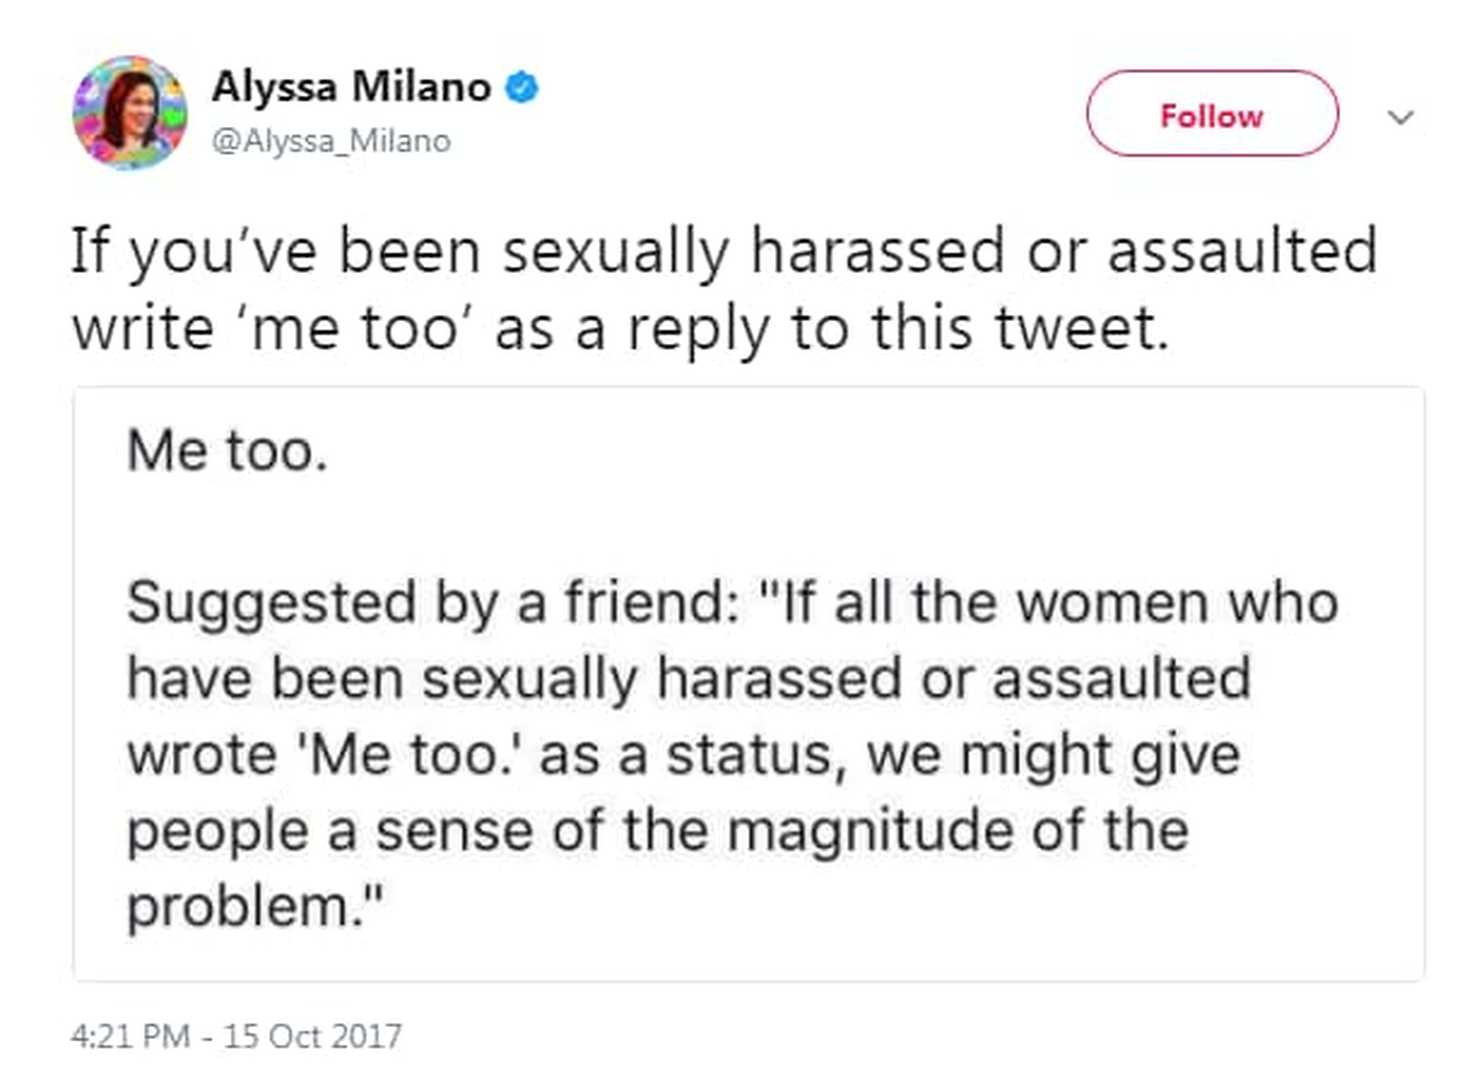 Alyssa Milano Sexual Harrassment and Assault Famous Tweet Image